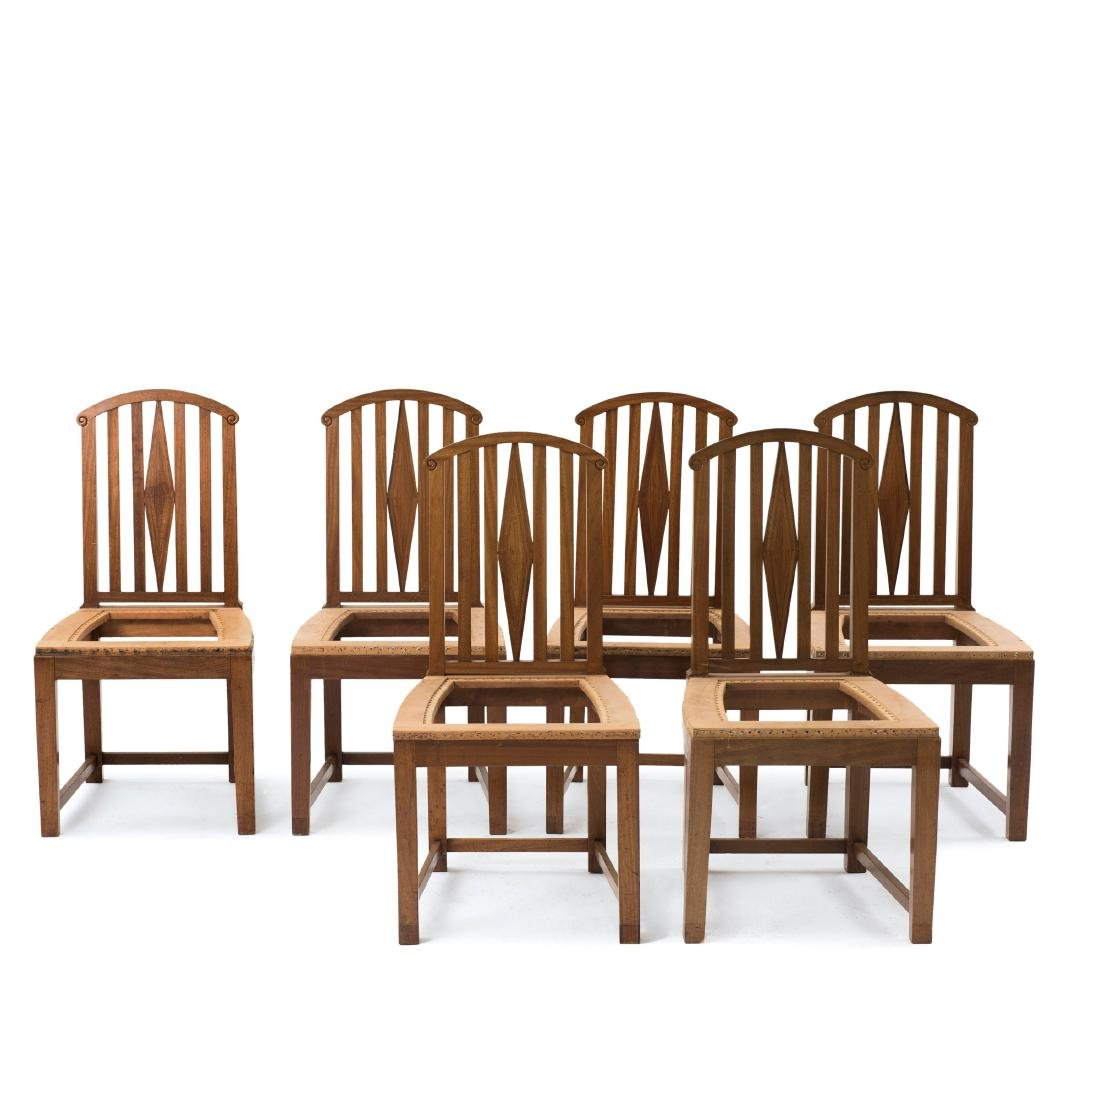 Six side chairs, designed for the designer's first